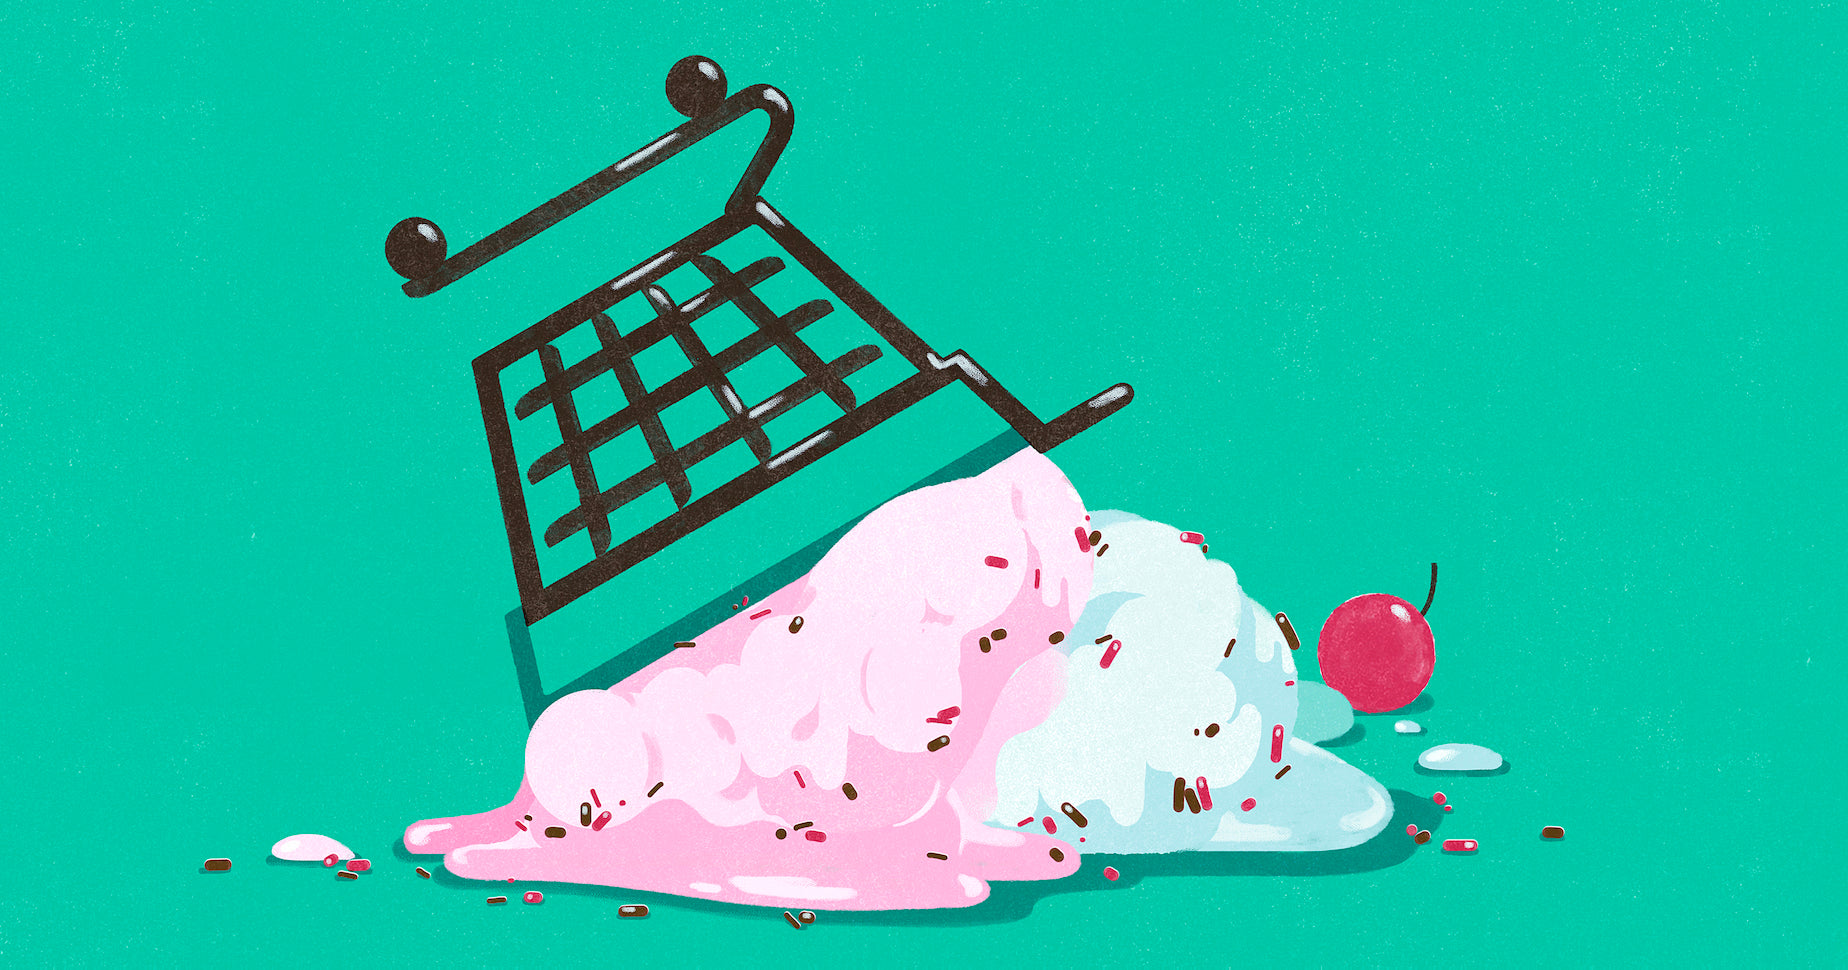 Illustration of a shopping cart filled with ice cream that's tipped over, representing the mistakes one can make when starting an online business